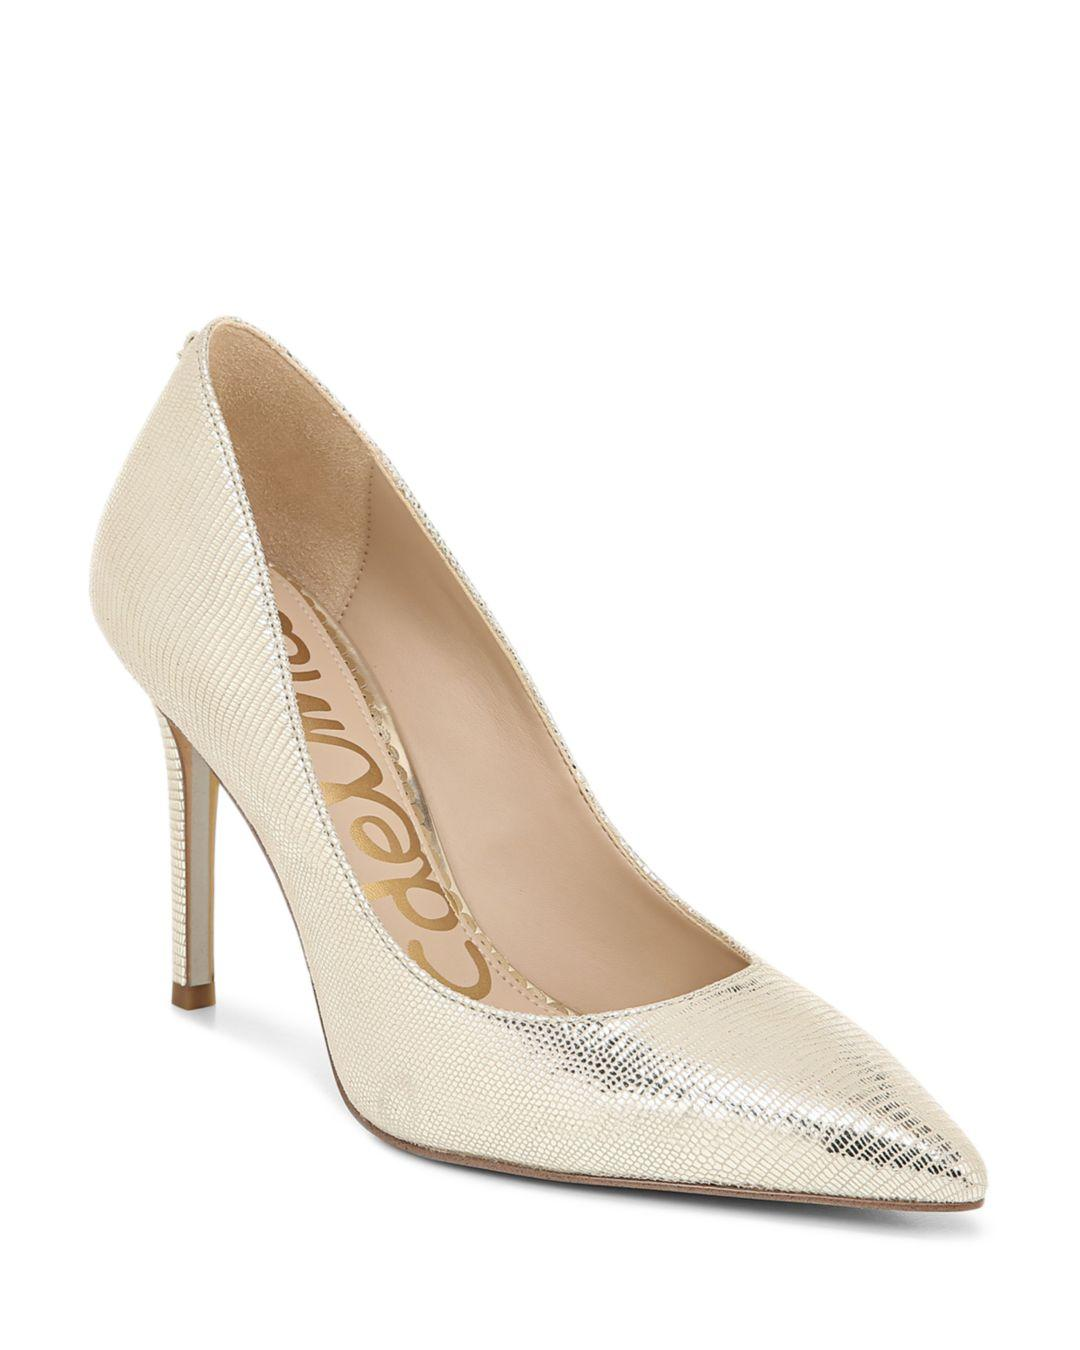 b0f635a5f9c Lyst - Sam Edelman Hazel Leather Pointed Toe Pumps in Metallic